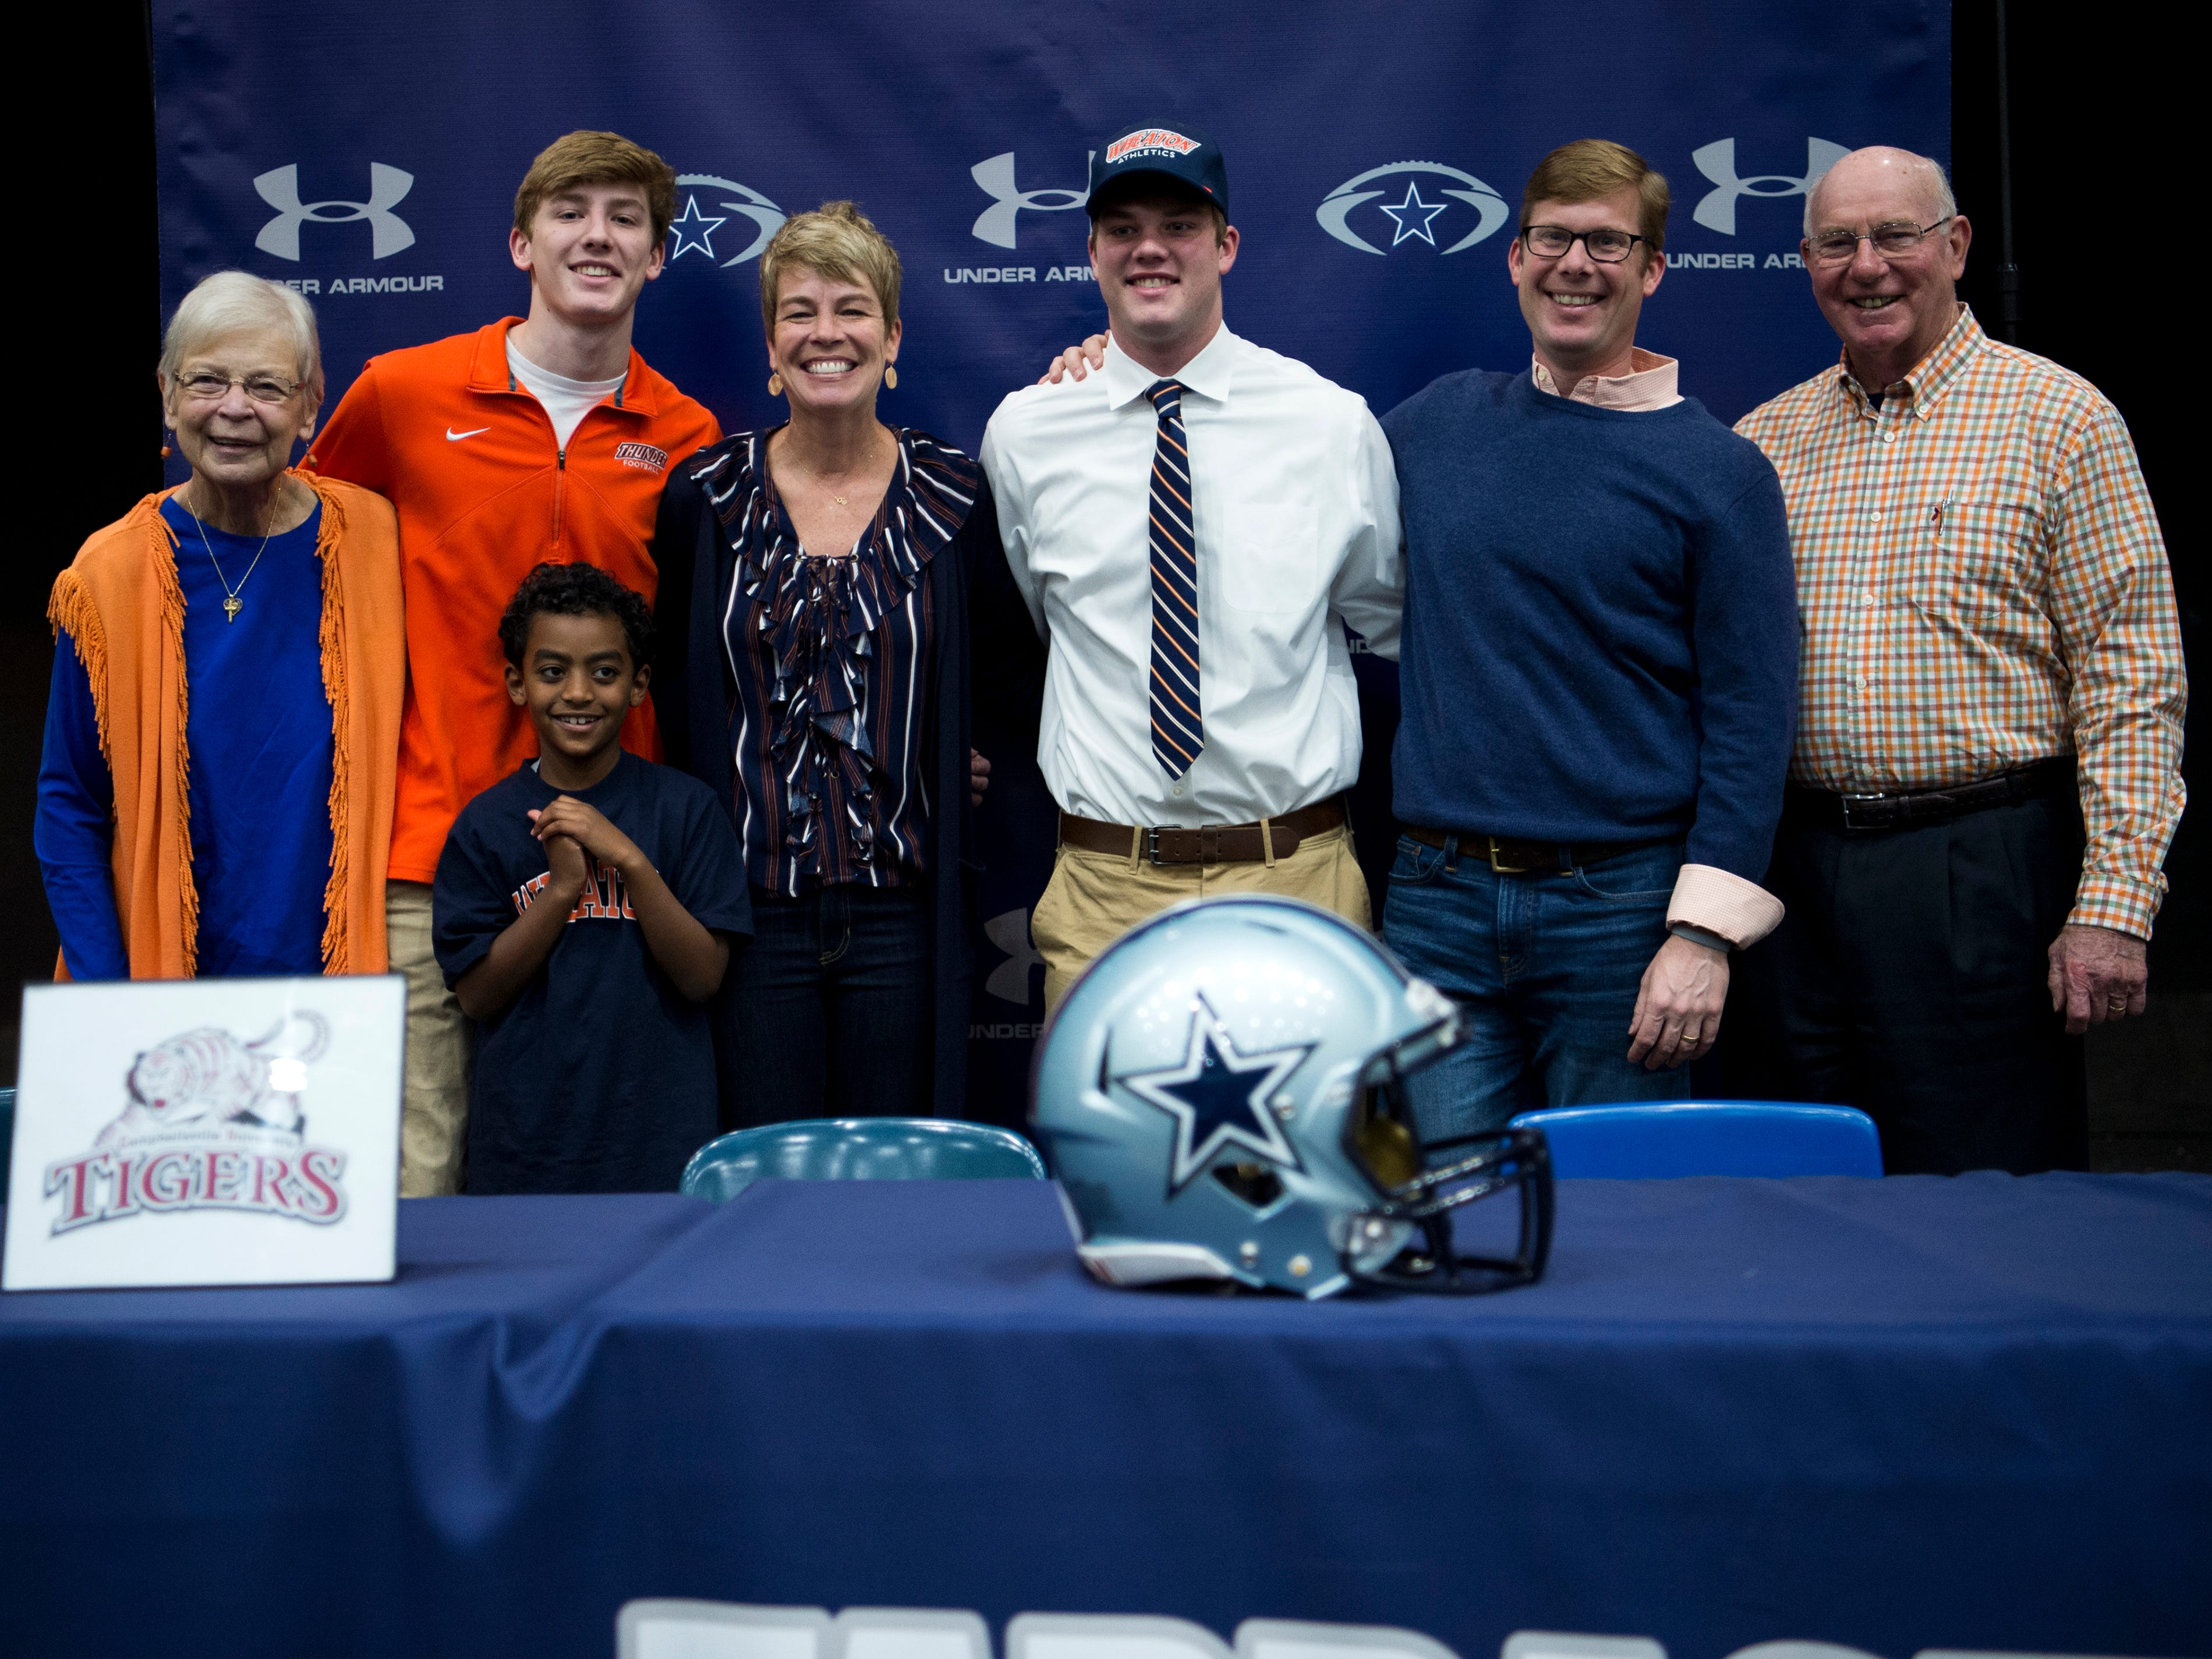 Farragut football player Caleb Kuhn during a National Signing Day event at Farragut High's auditorium on Wednesday, February 6, 2019.